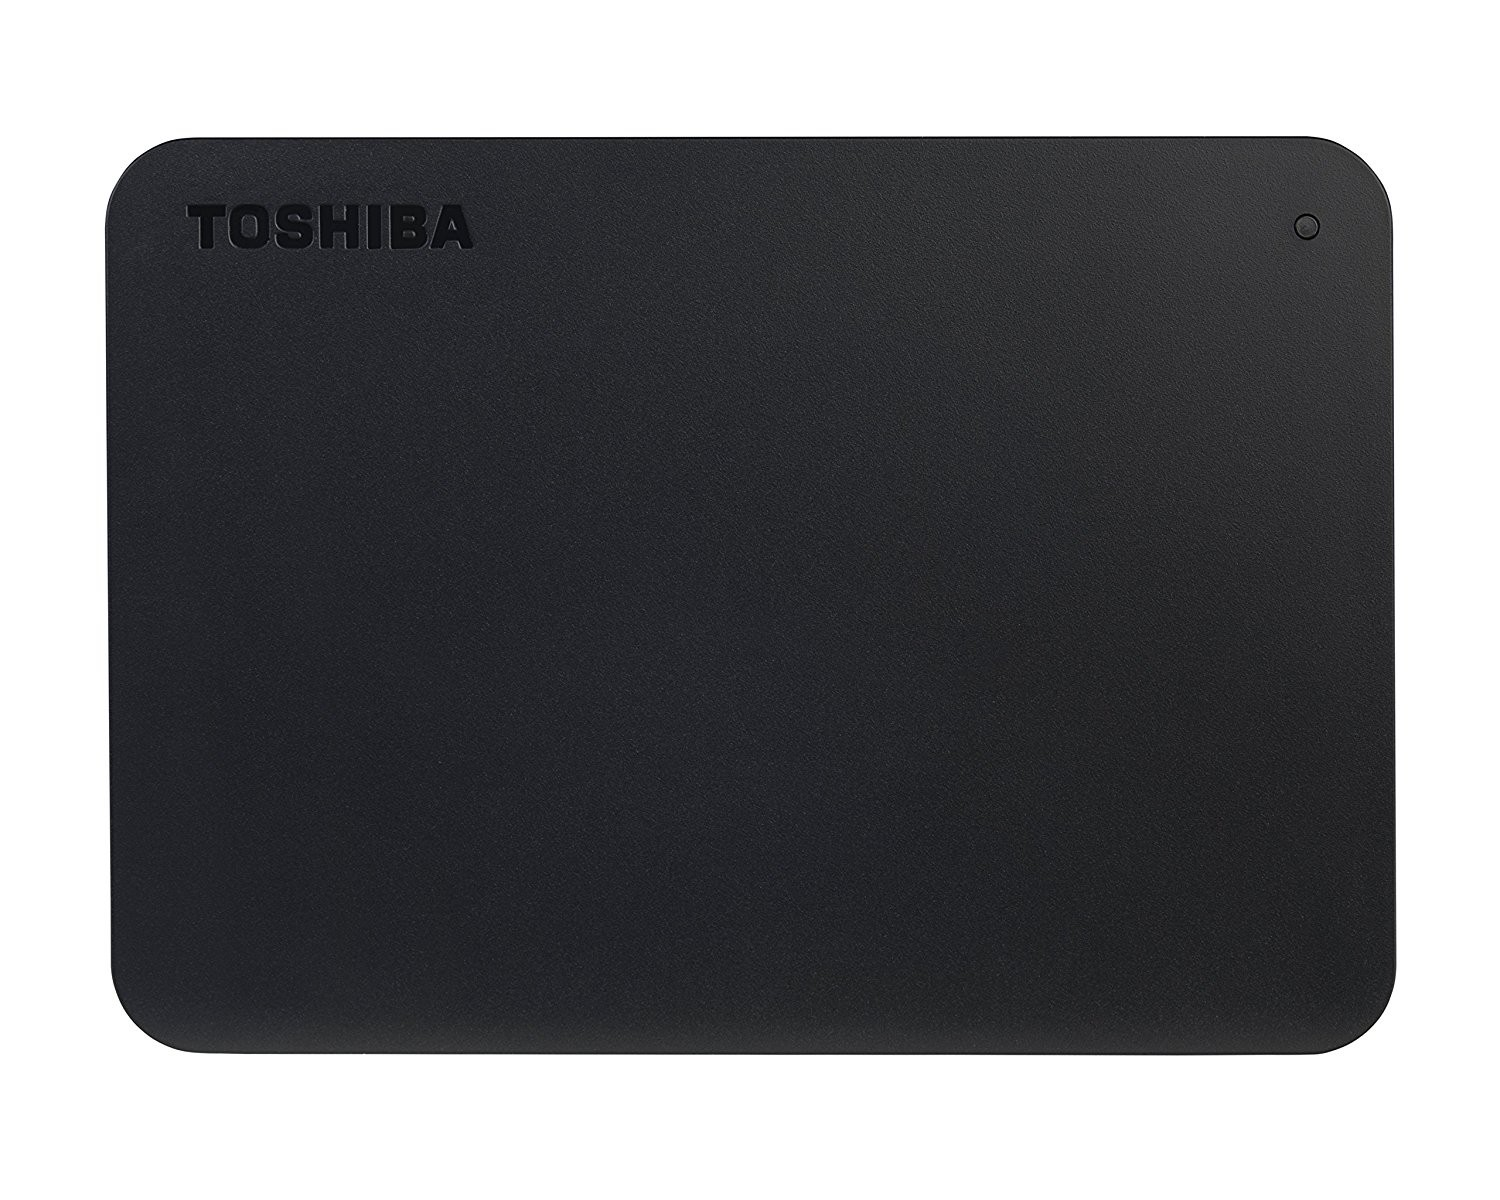 HD EXT 2.5  1TB TOSHIBA CANVIO BASIC USB 3.0 NEGRO  HDTB410EK3AA